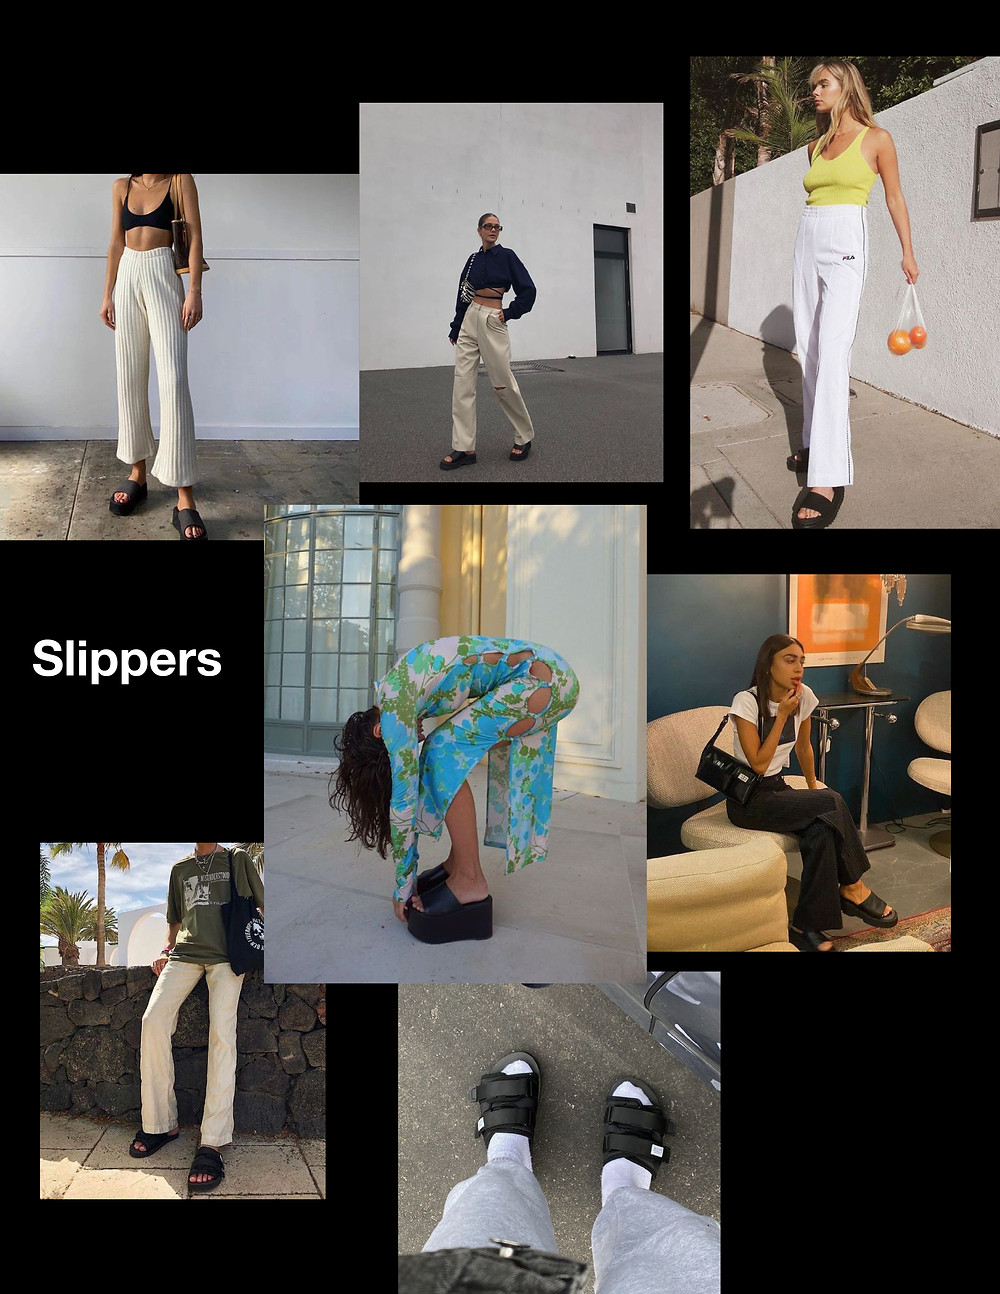 Slippers shopping guide